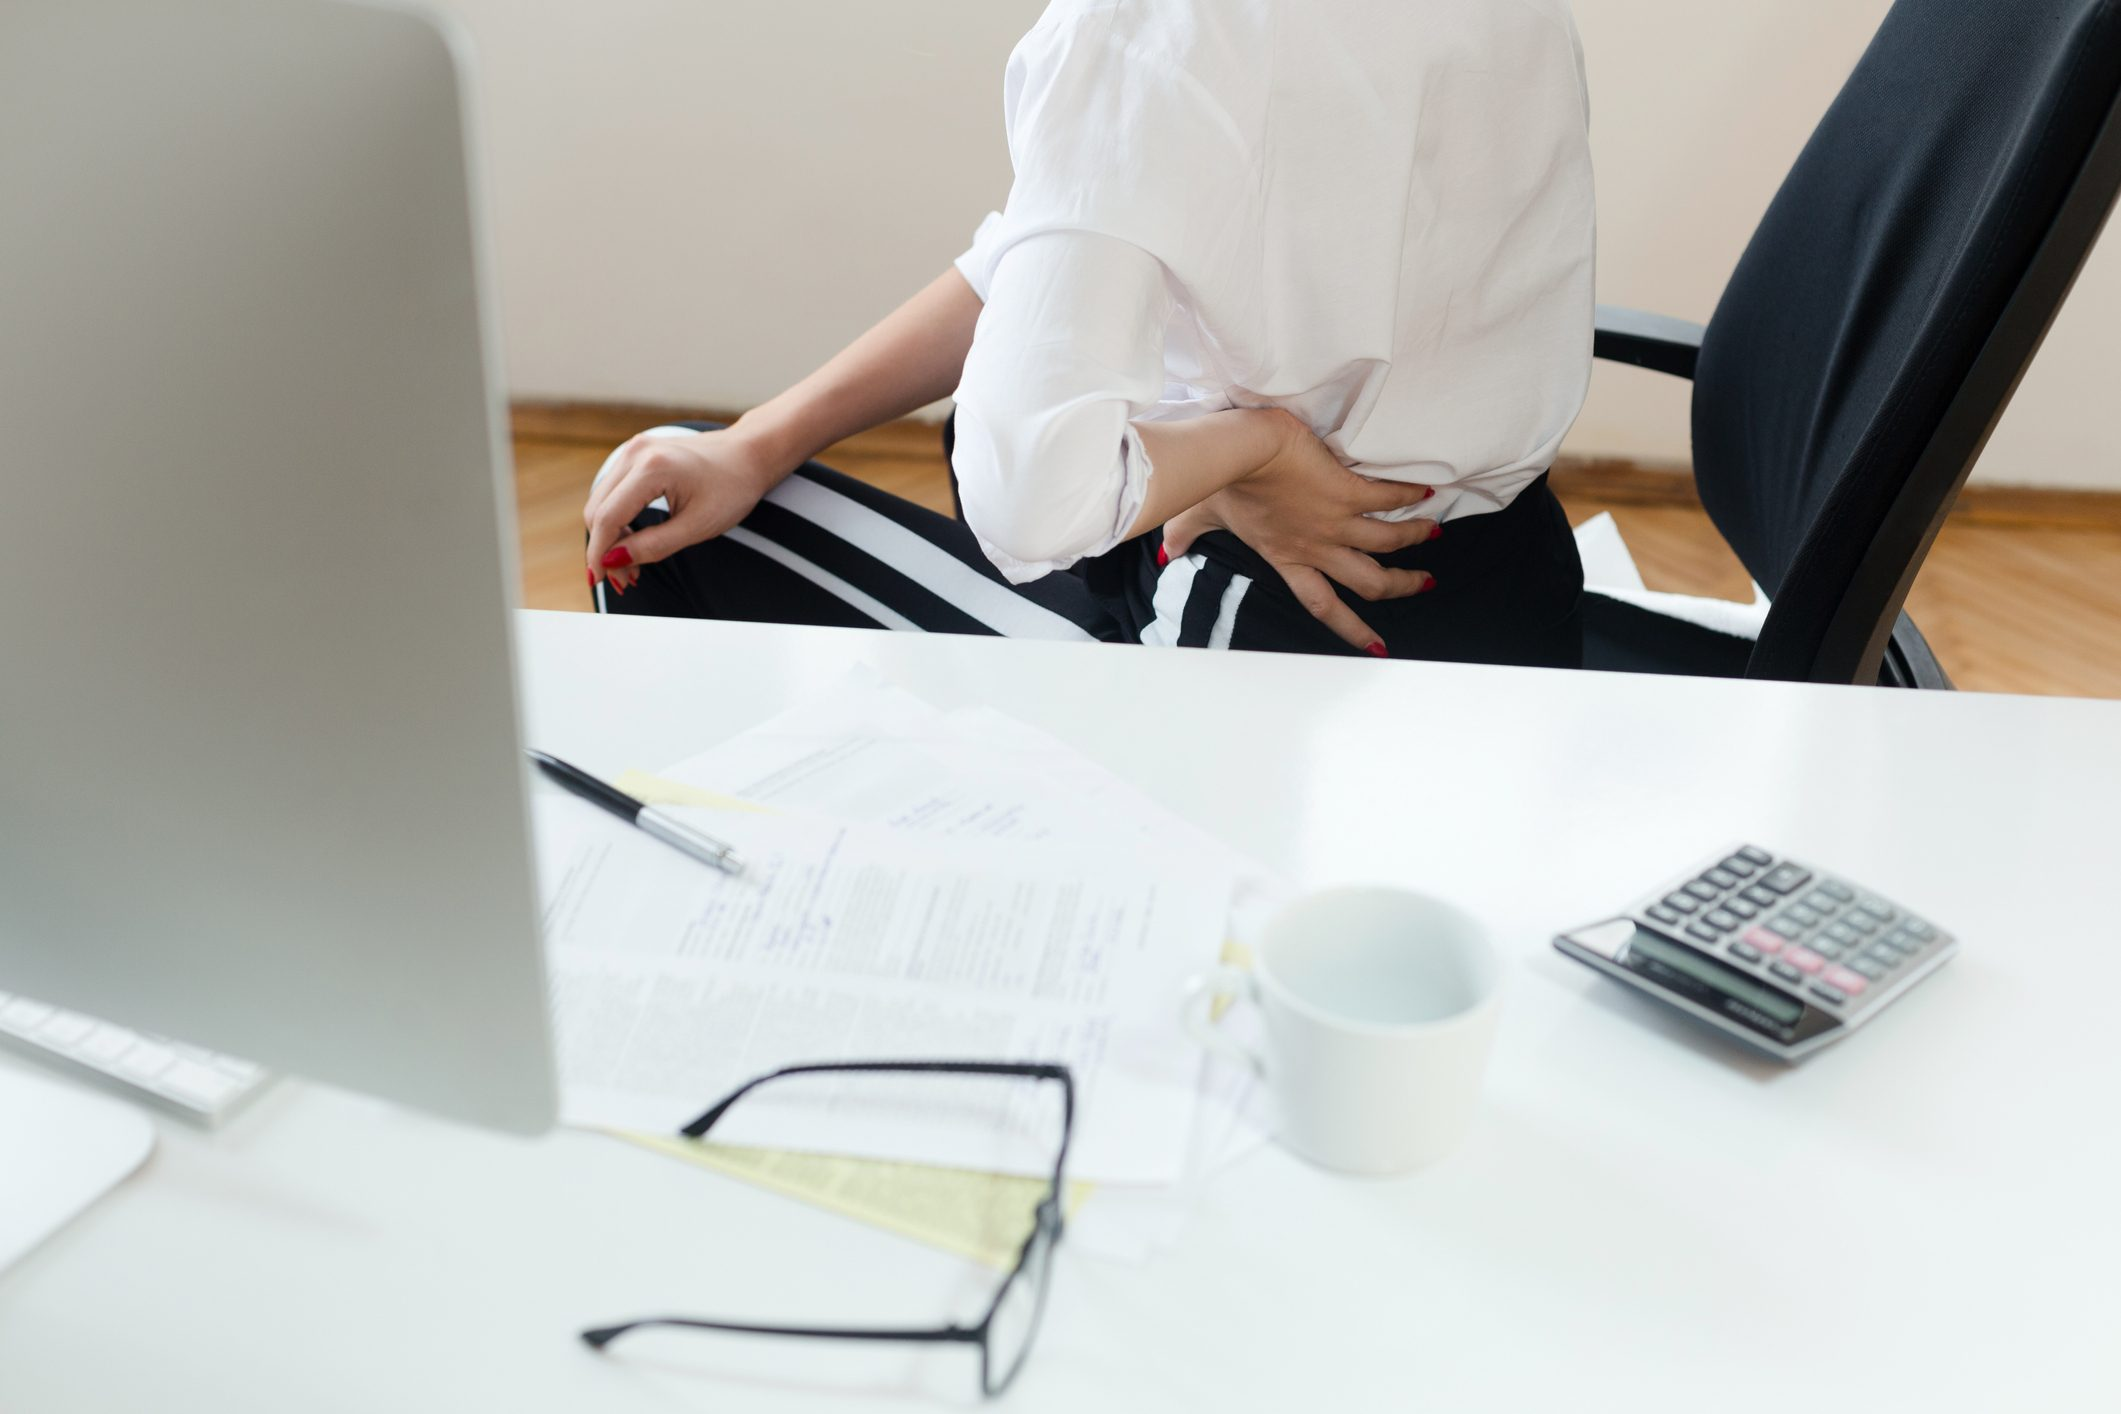 woman with back pain sitting at desk